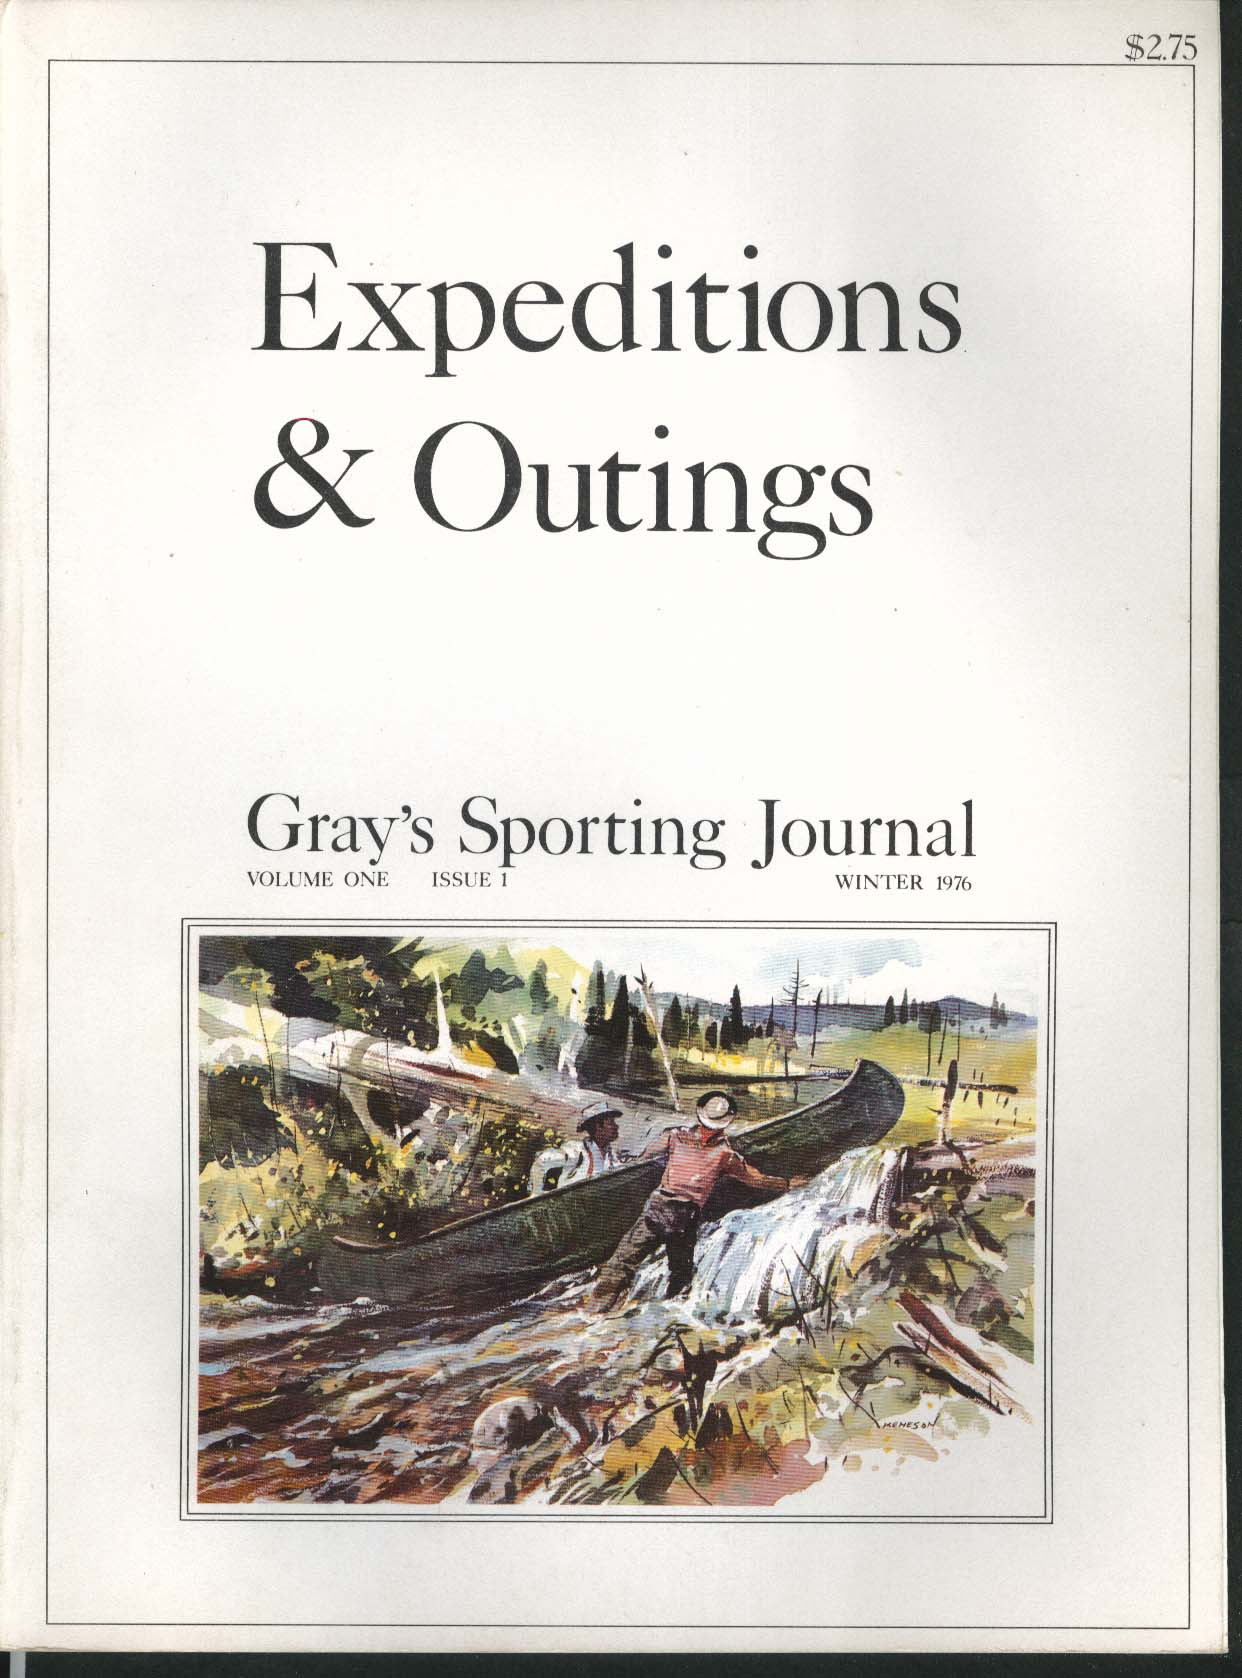 GRAY'S SPORTING JOURNAL Vol 1 #1 Expeditions & Outings Mike Wade Winter 1976